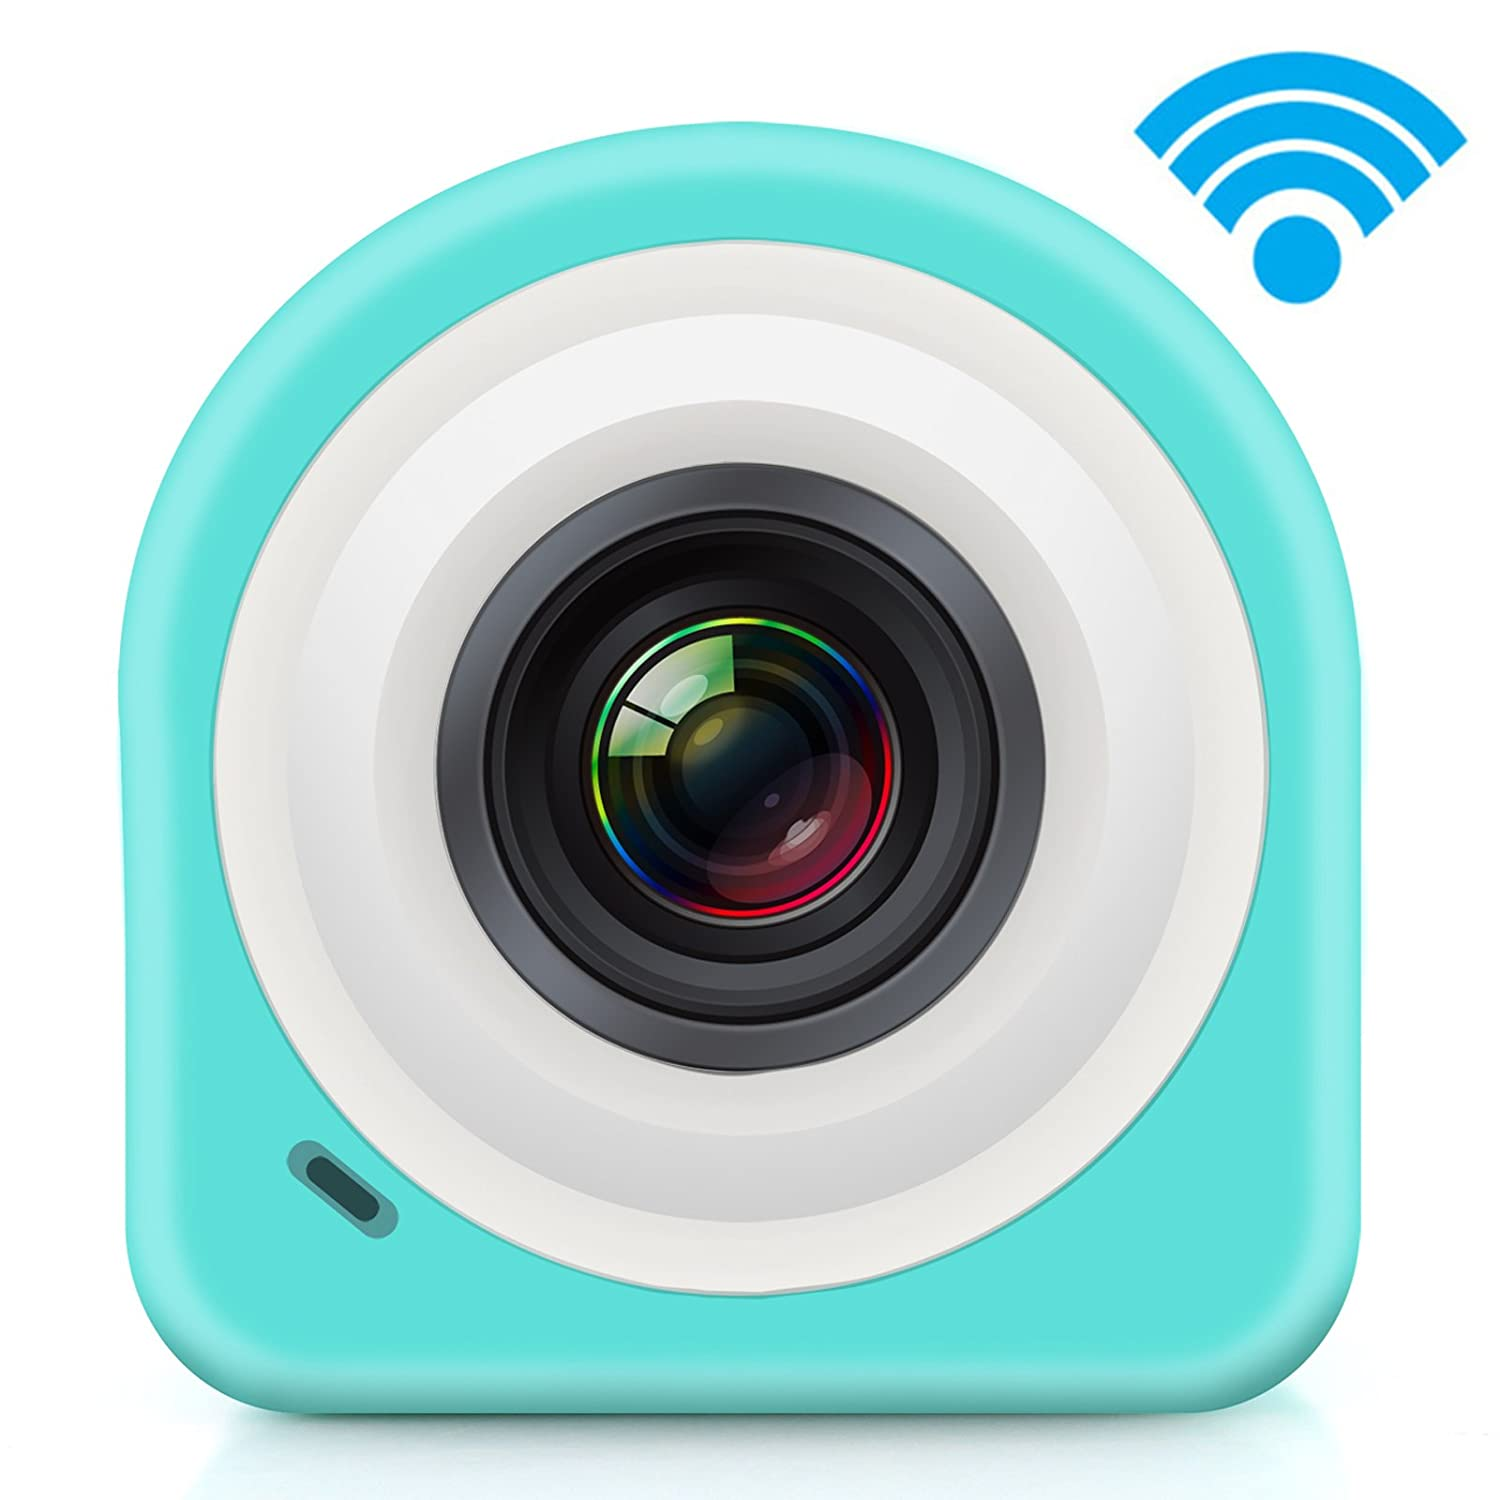 Sumsonic COCA Mini HD 1080p Action Video Camera with WI-FI, App, Smart Remote, Magnetic/Sticky Mounting (Blue)